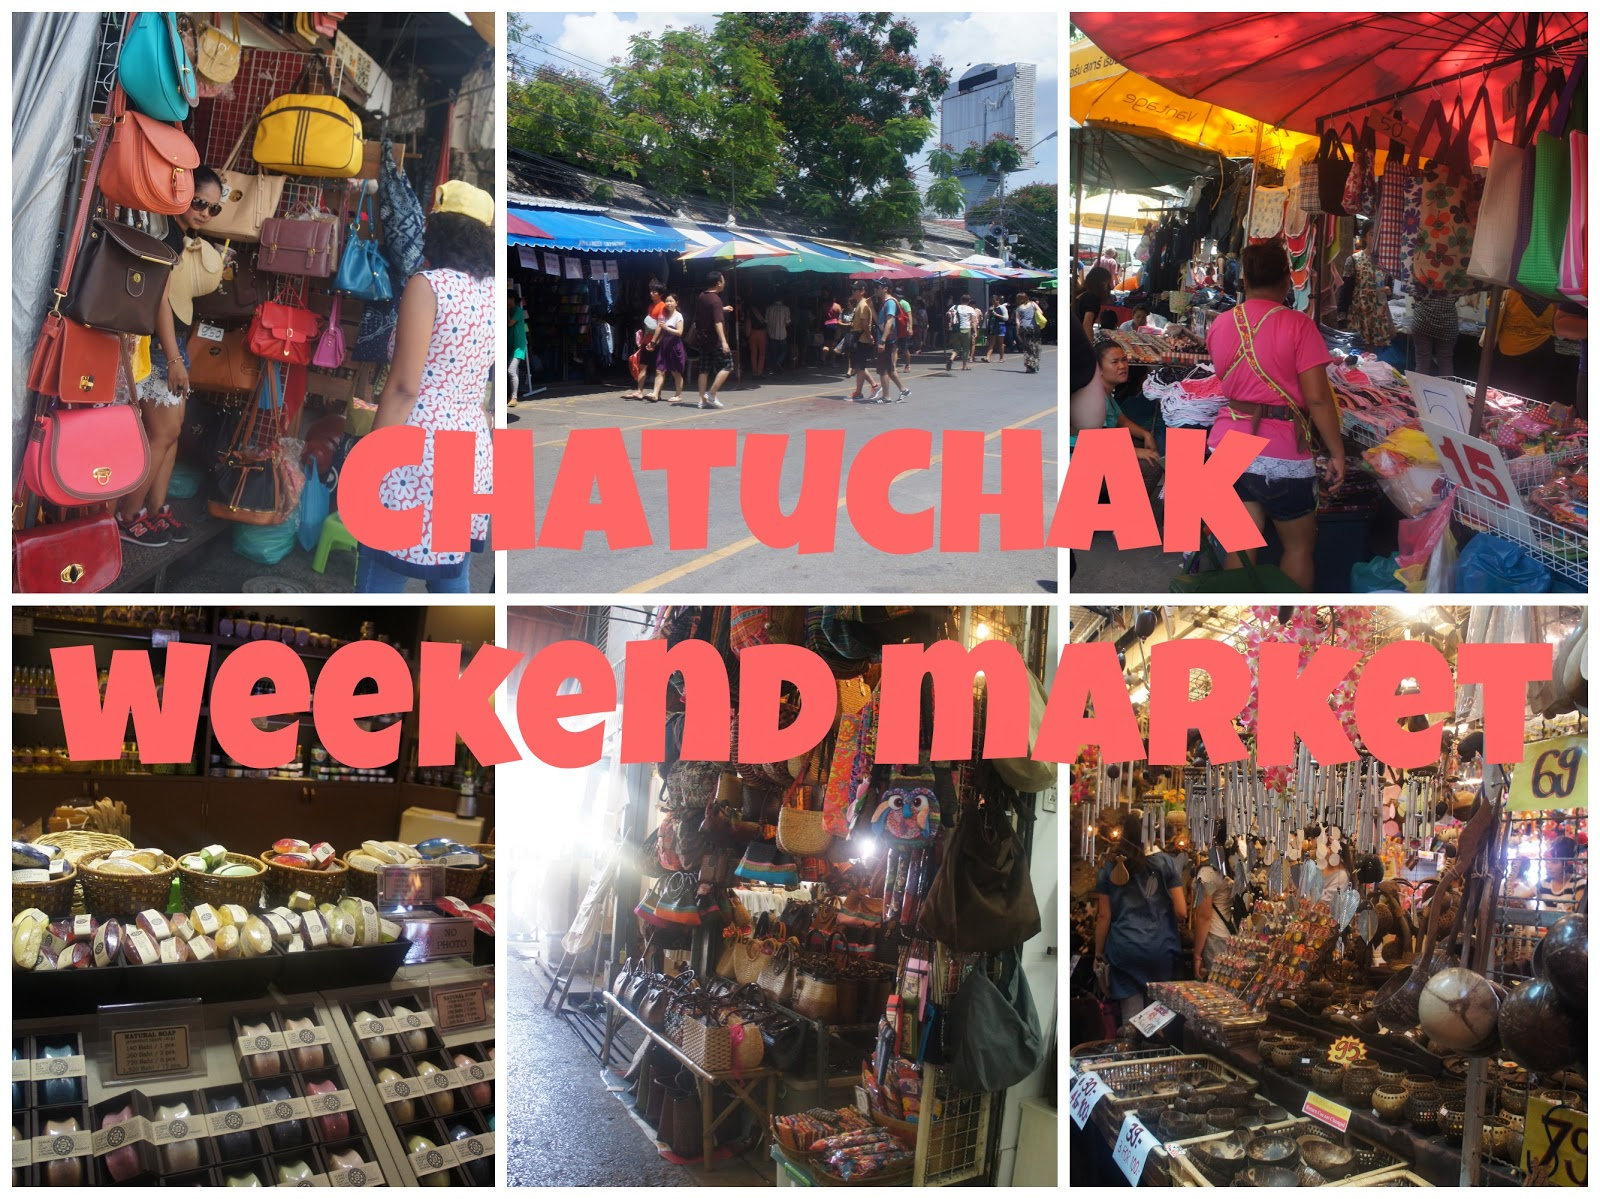 Chatuchak Weekend Market Bangkok Thailand Travel Guide